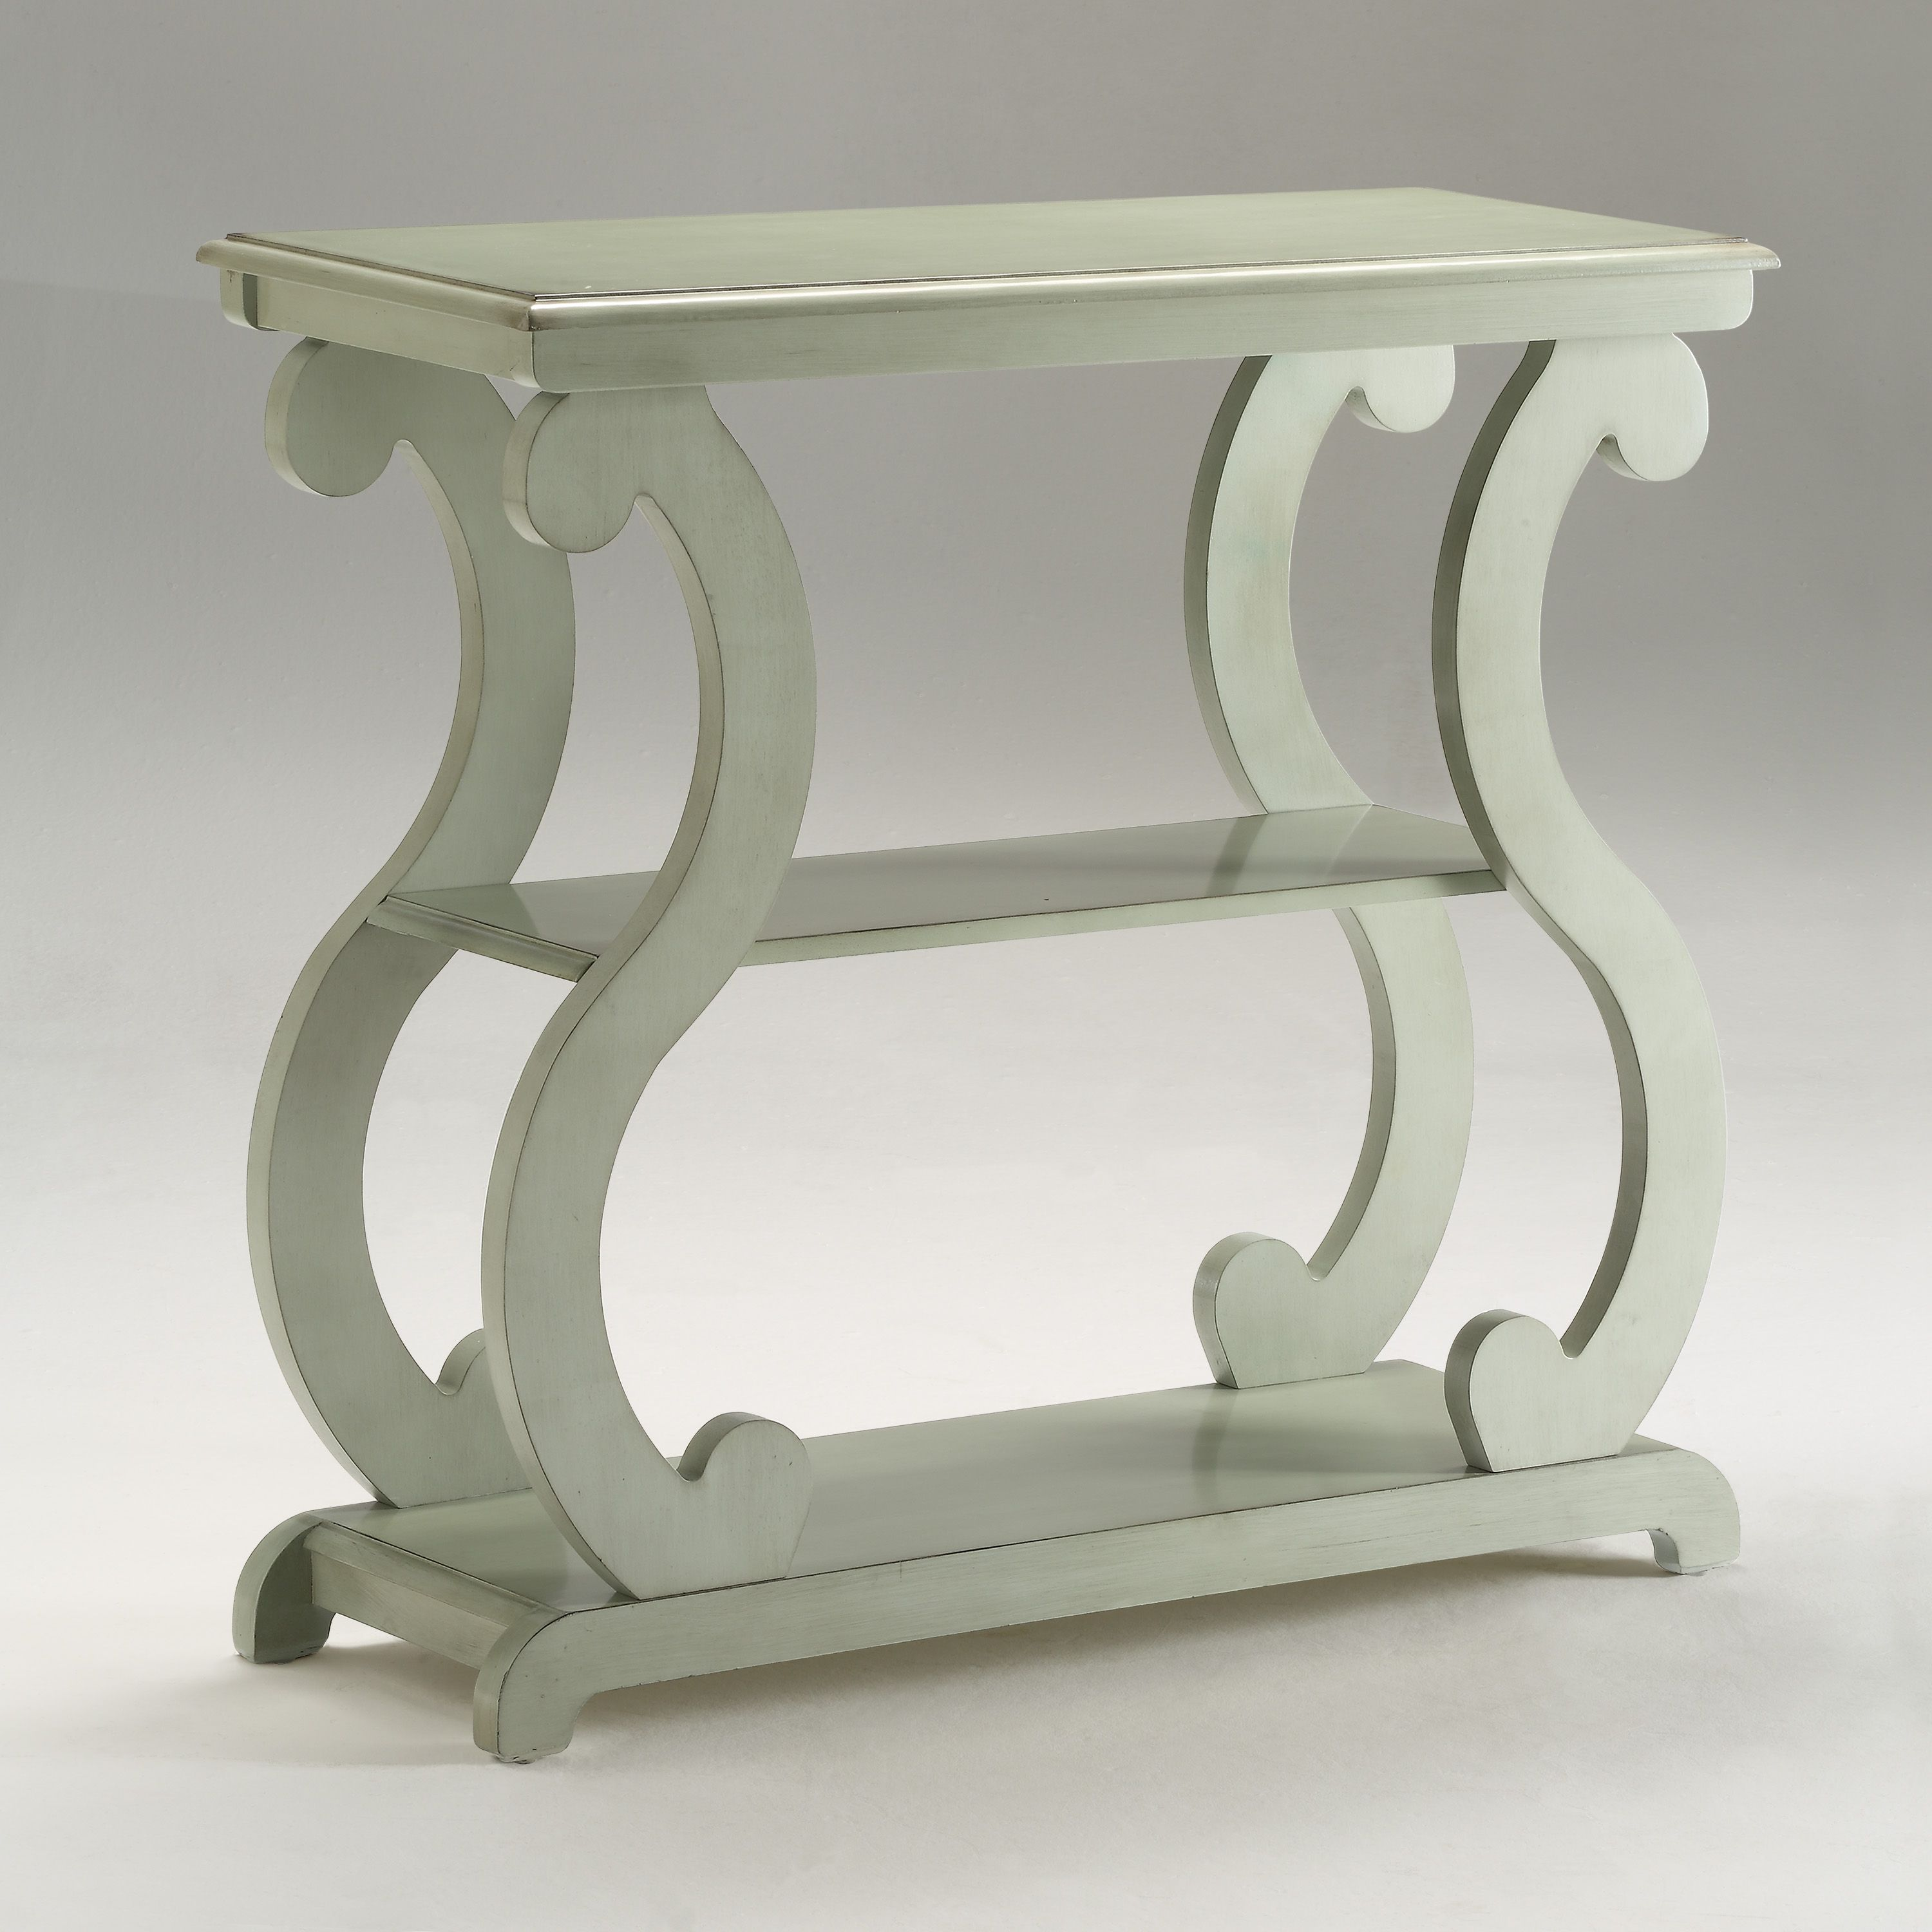 Home Console table, Wood furniture store, Cheap sofa tables